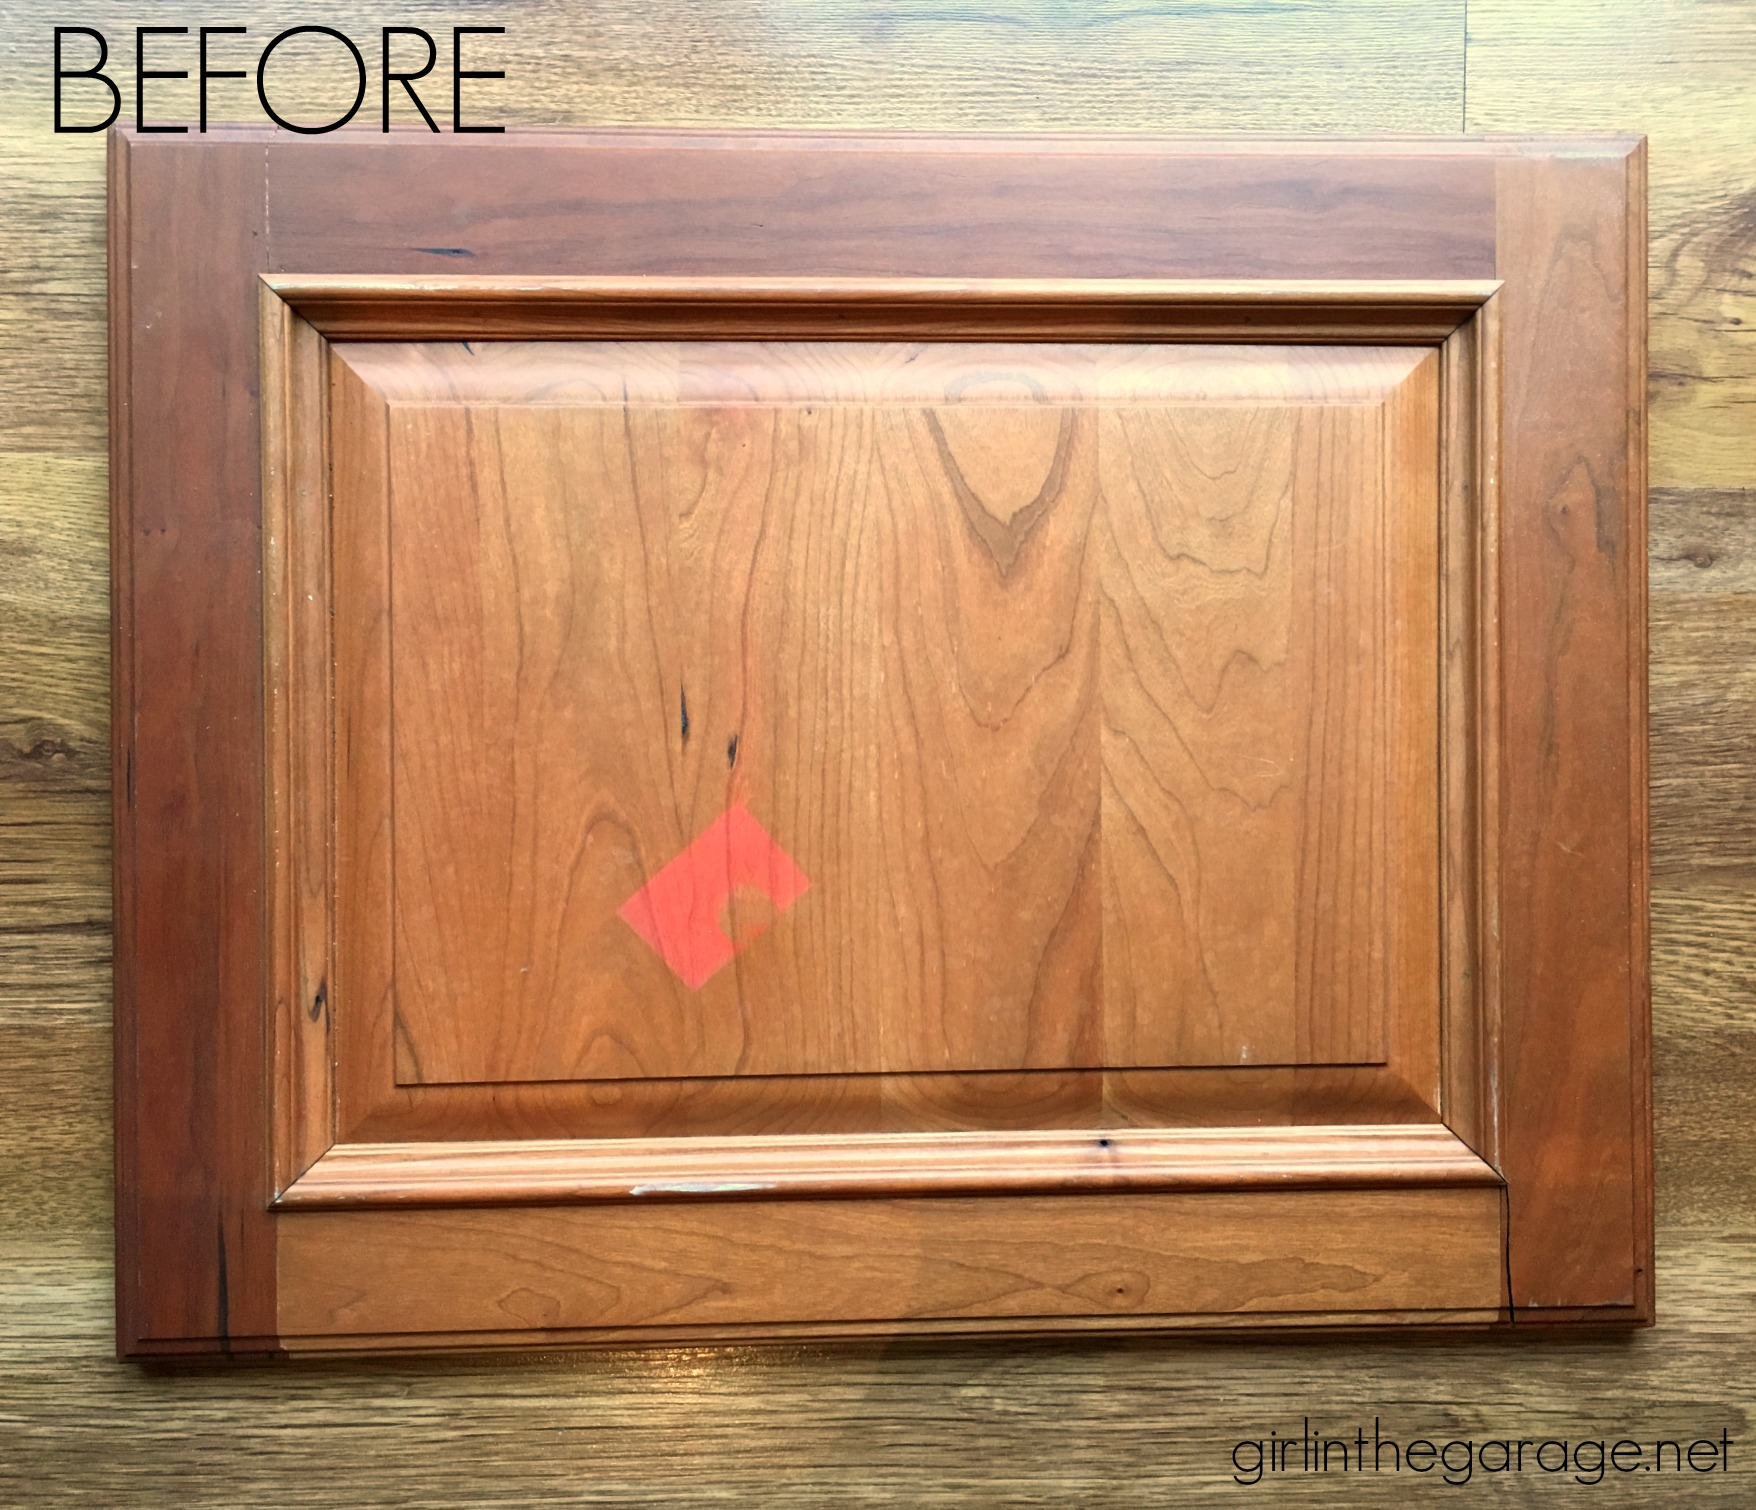 Superieur DIY Repurposed Cabinet Door   Upcycled Trash To Treasure Makeover By Girl  In The Garage